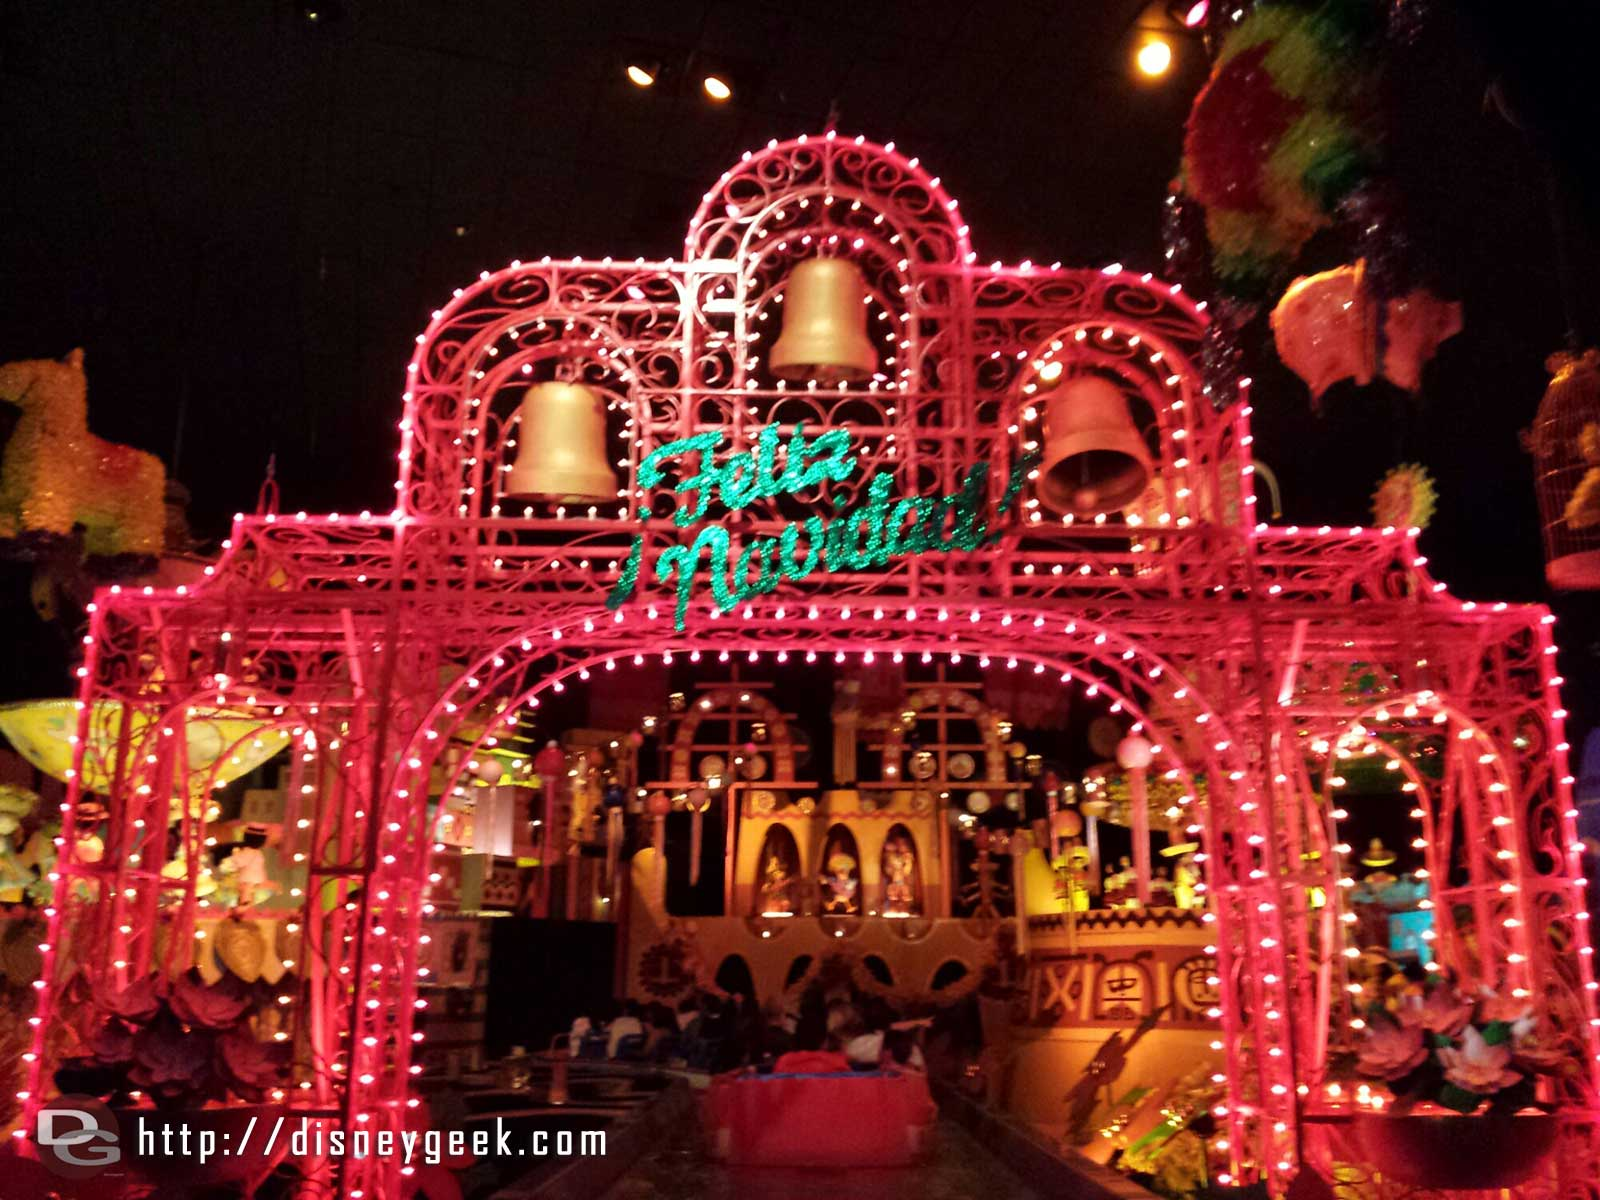 Feliz Navidad – A new bell structure it's a Small World Holiday #Disneyland